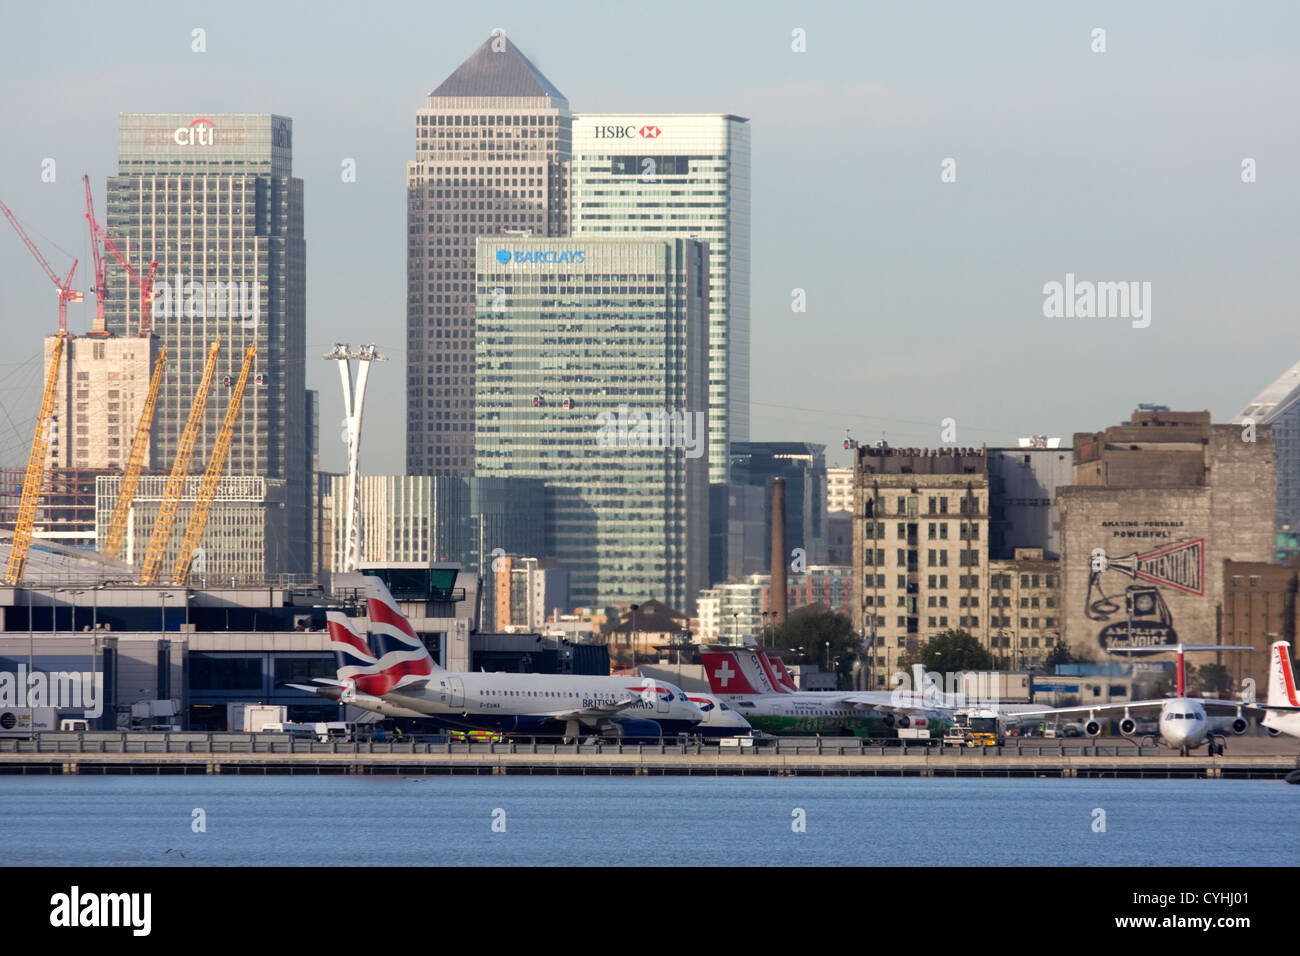 Regional airliners at London City Airport. Canary Wharf and O2 in the background, England, UK Stock Photo